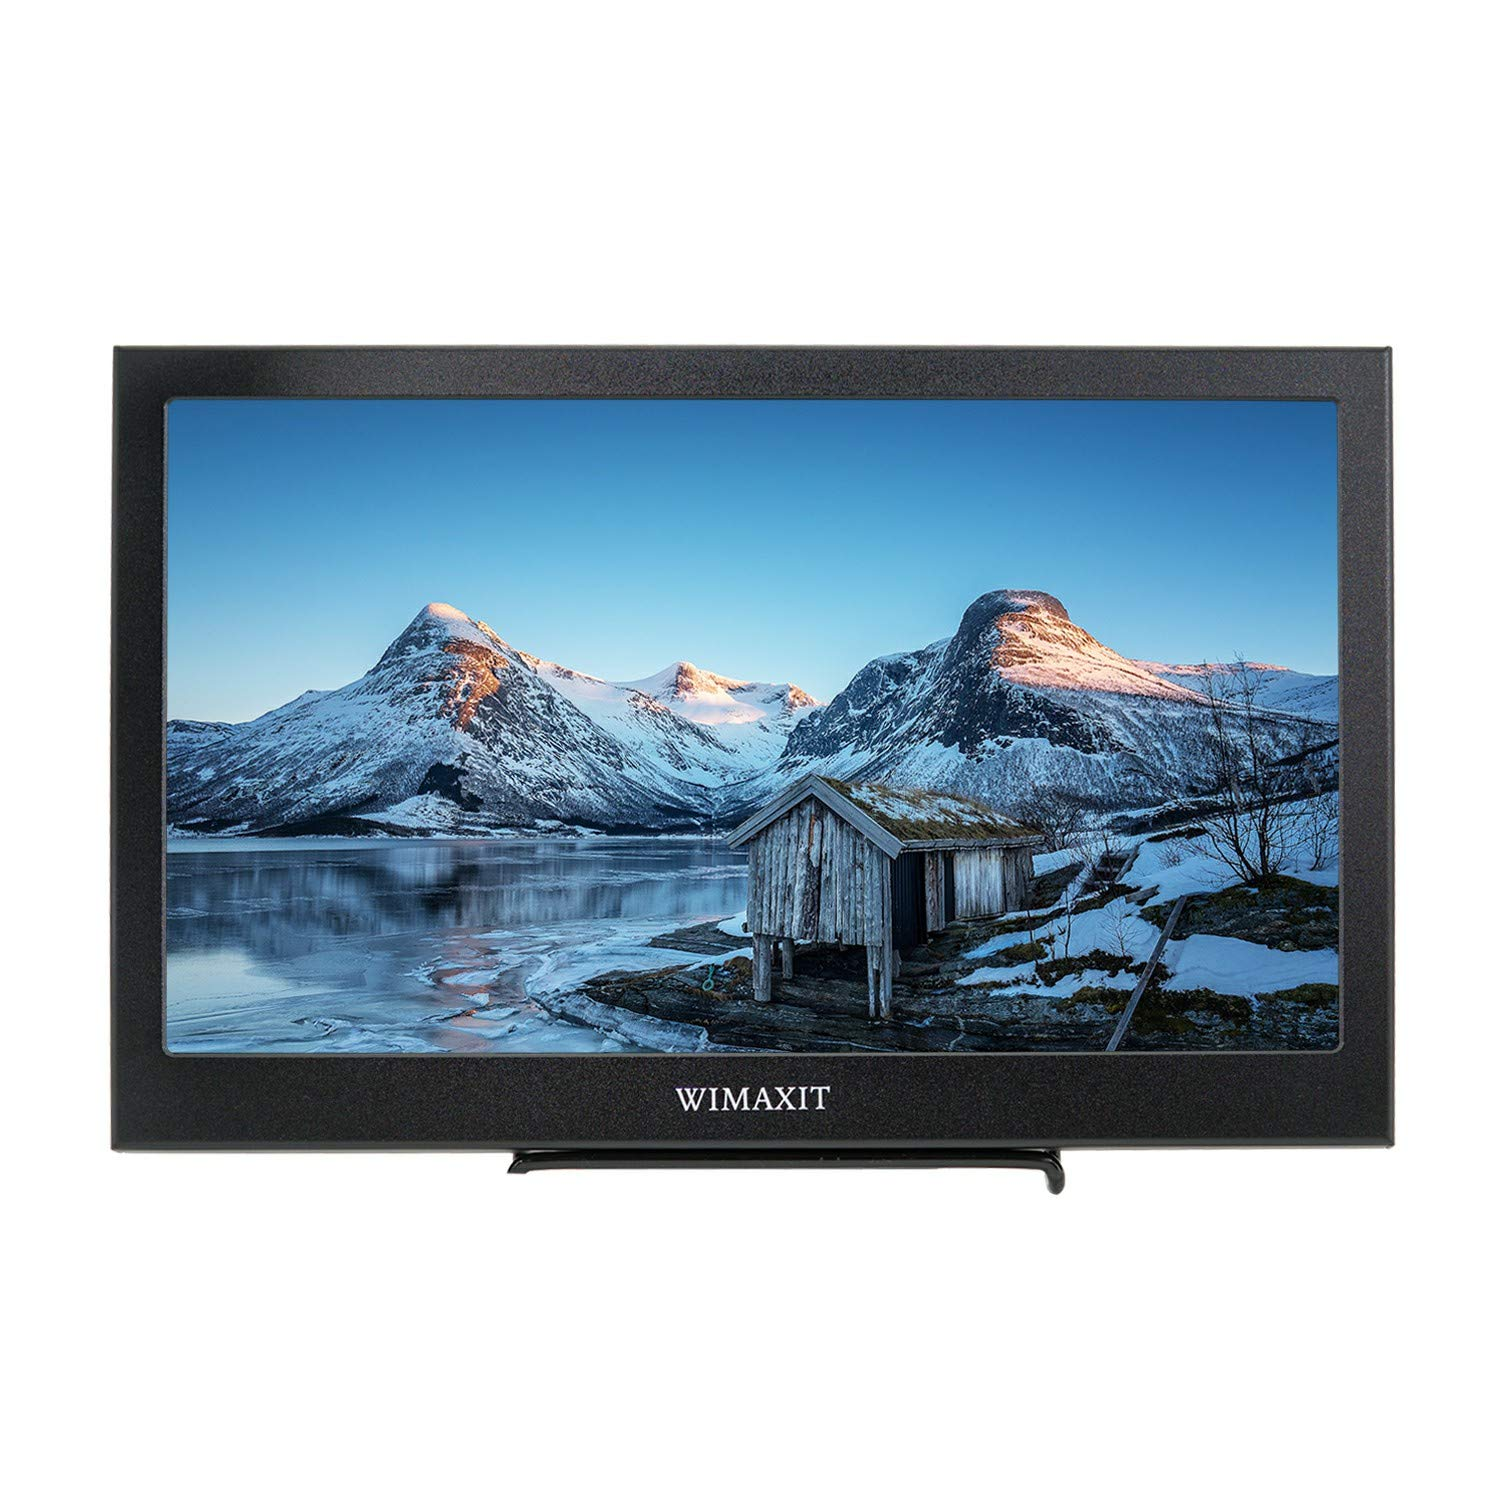 WIMAXIT 13.3 Inch VESA Monitor, FHD IPS 1920X1080 16 9 Display 75mm Mount External Screen for PC PS3 PS4 Xbox Laptop,Gaming